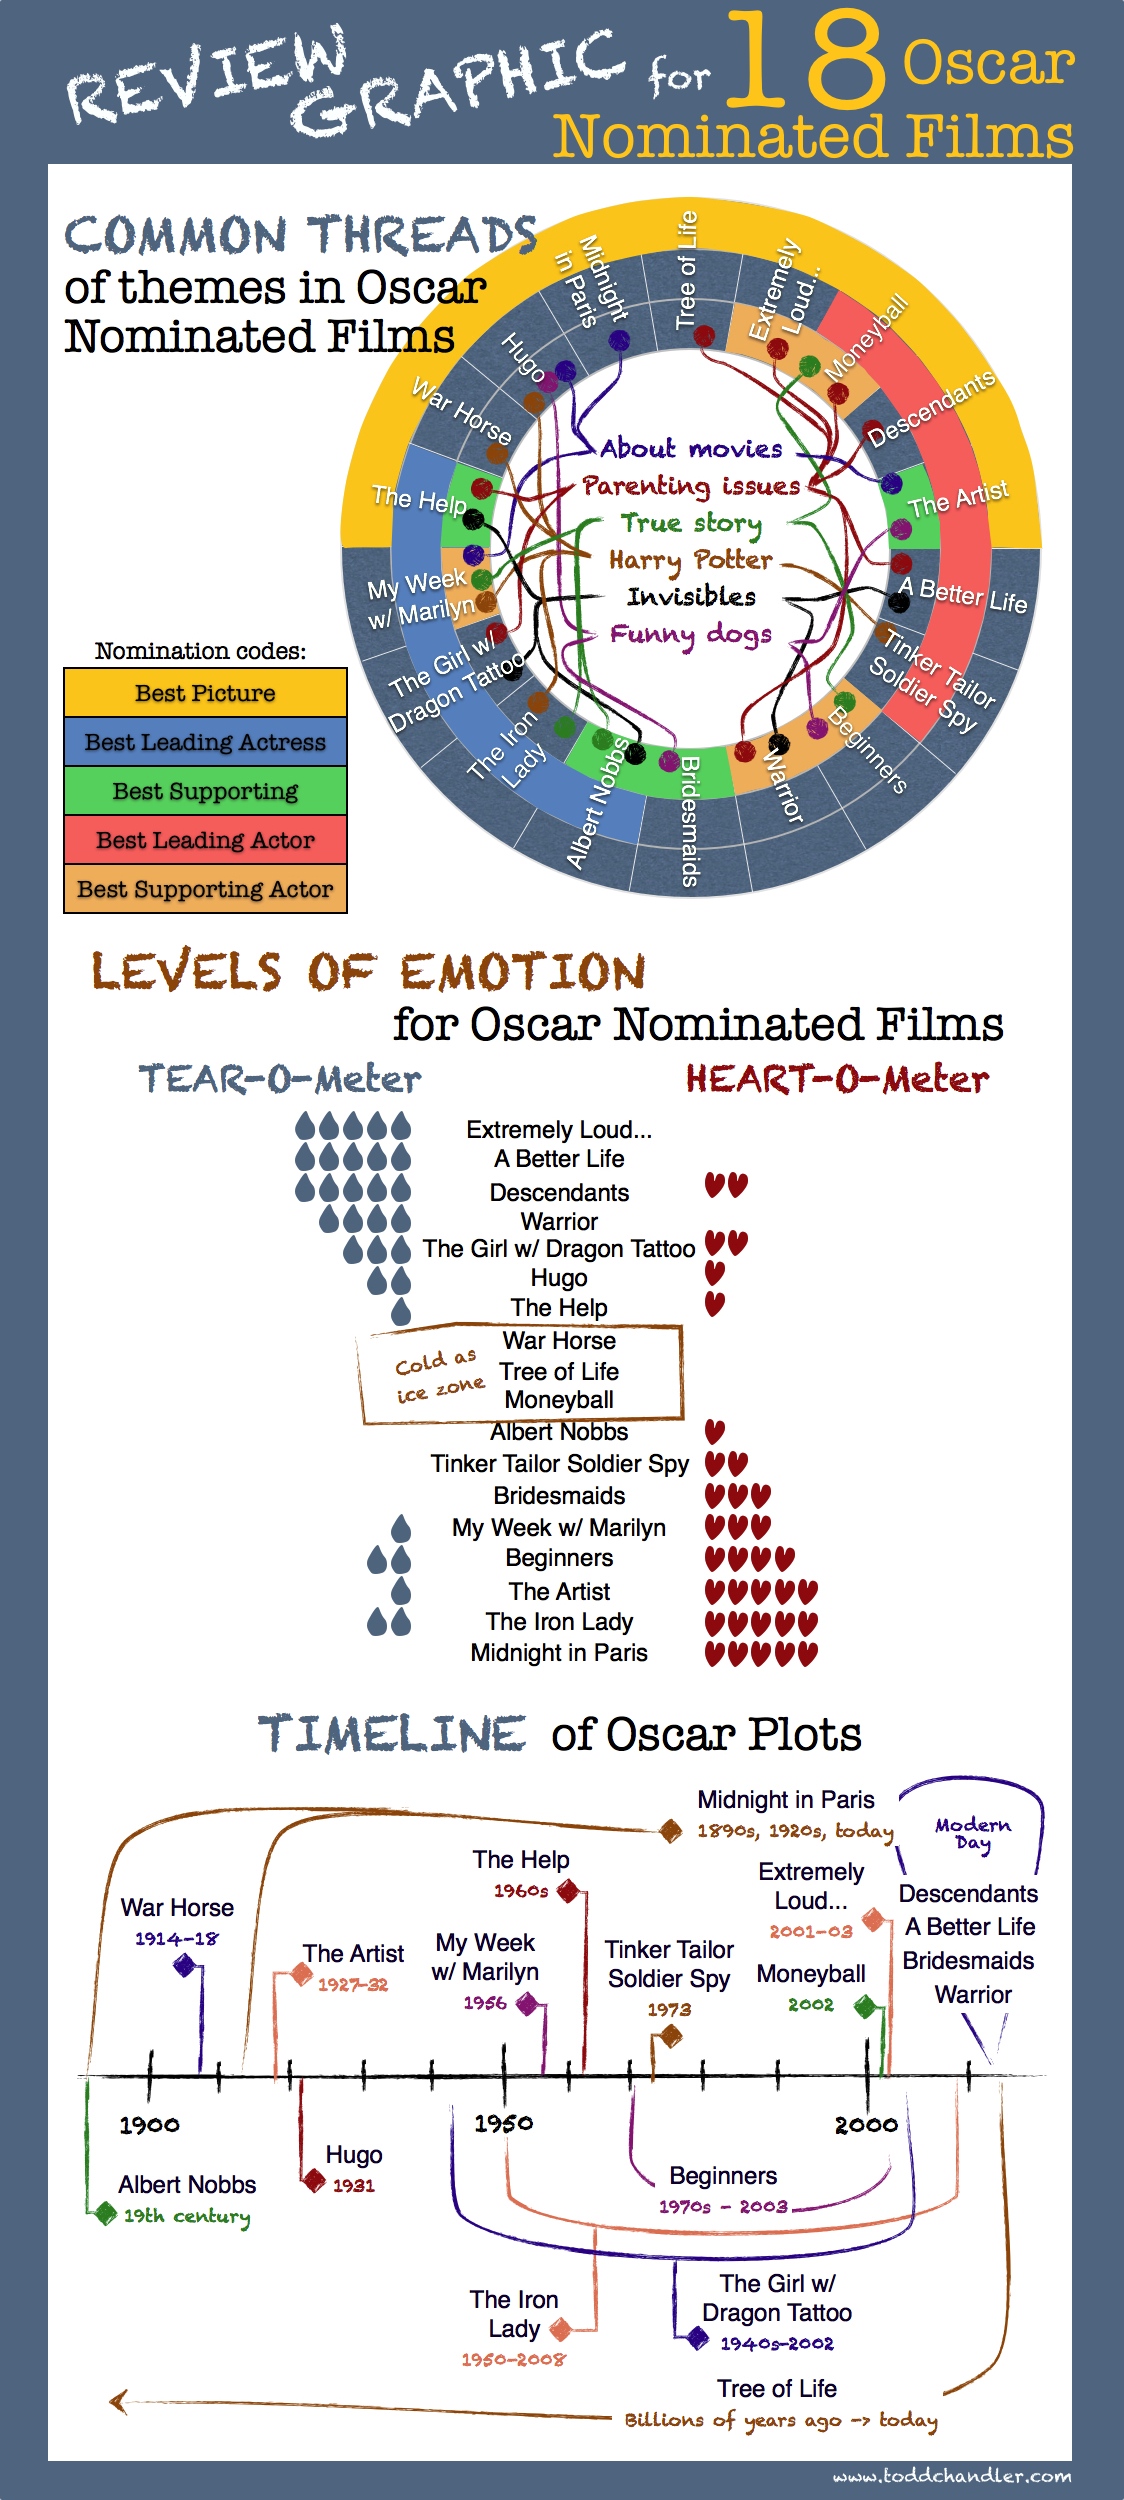 Review Graphic of 18 Oscar Nominated Films